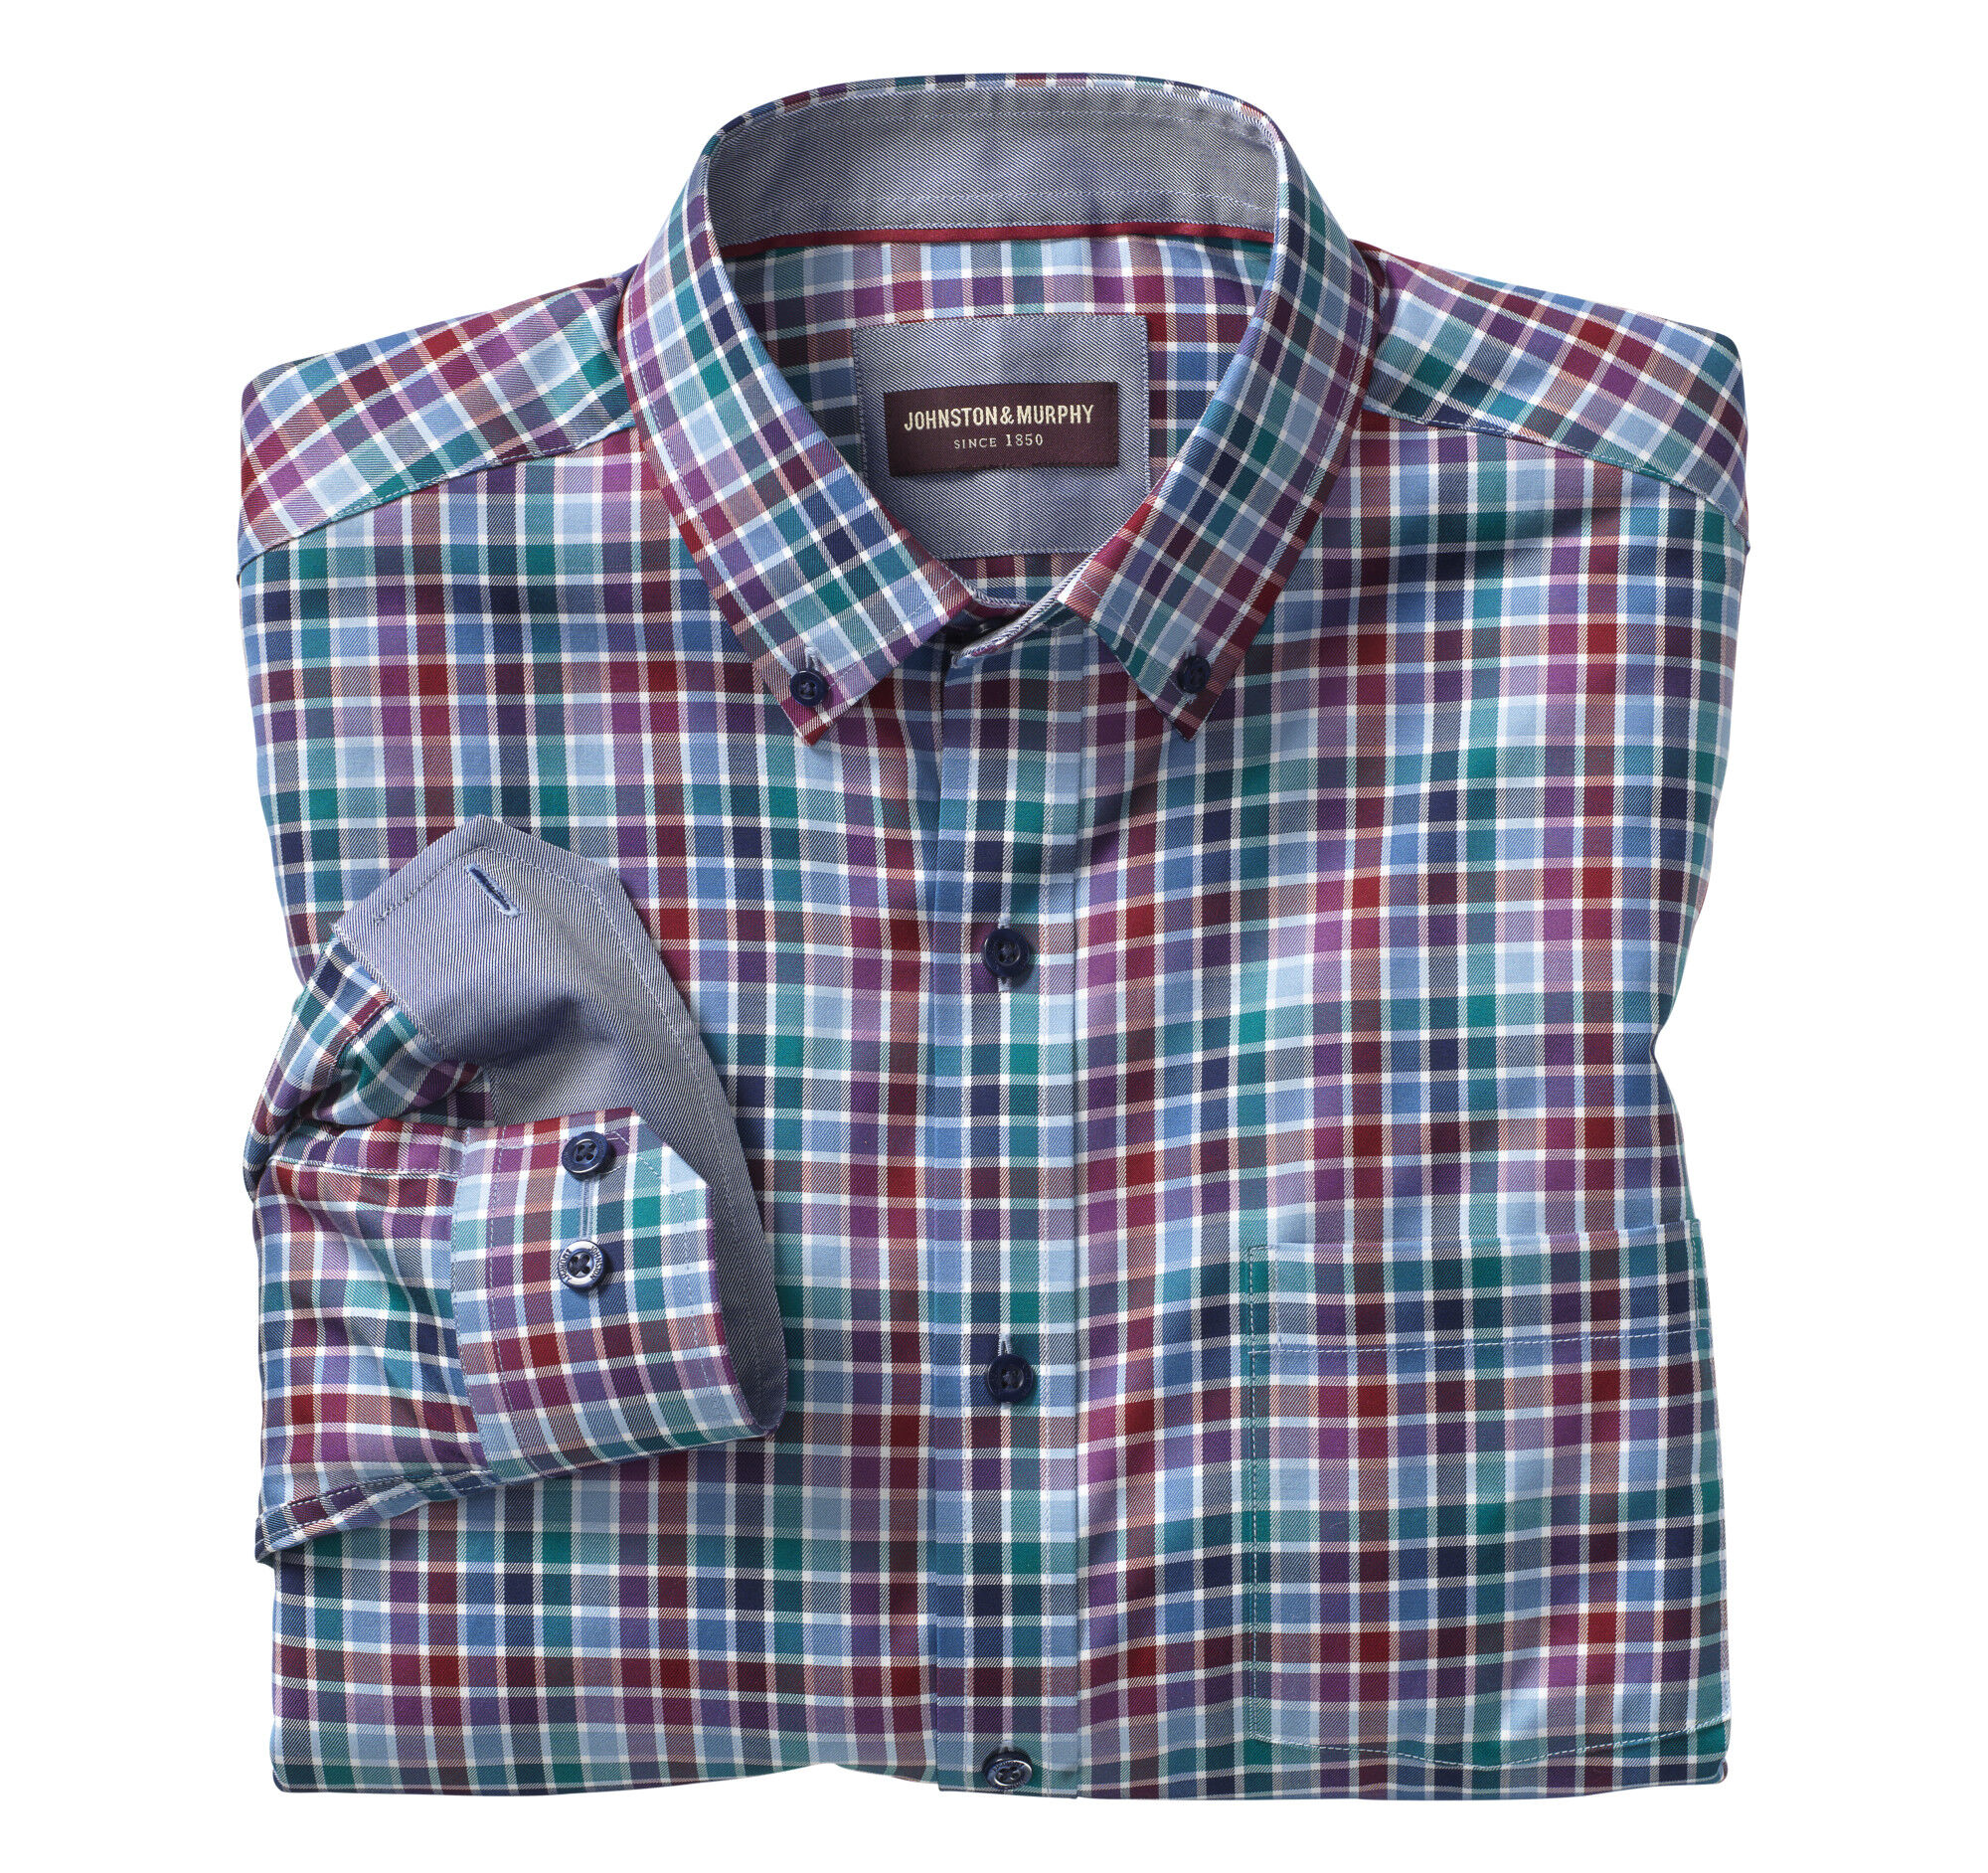 Multi-Color Twill Check Button-Down Collar Shirt | Johnston & Murphy